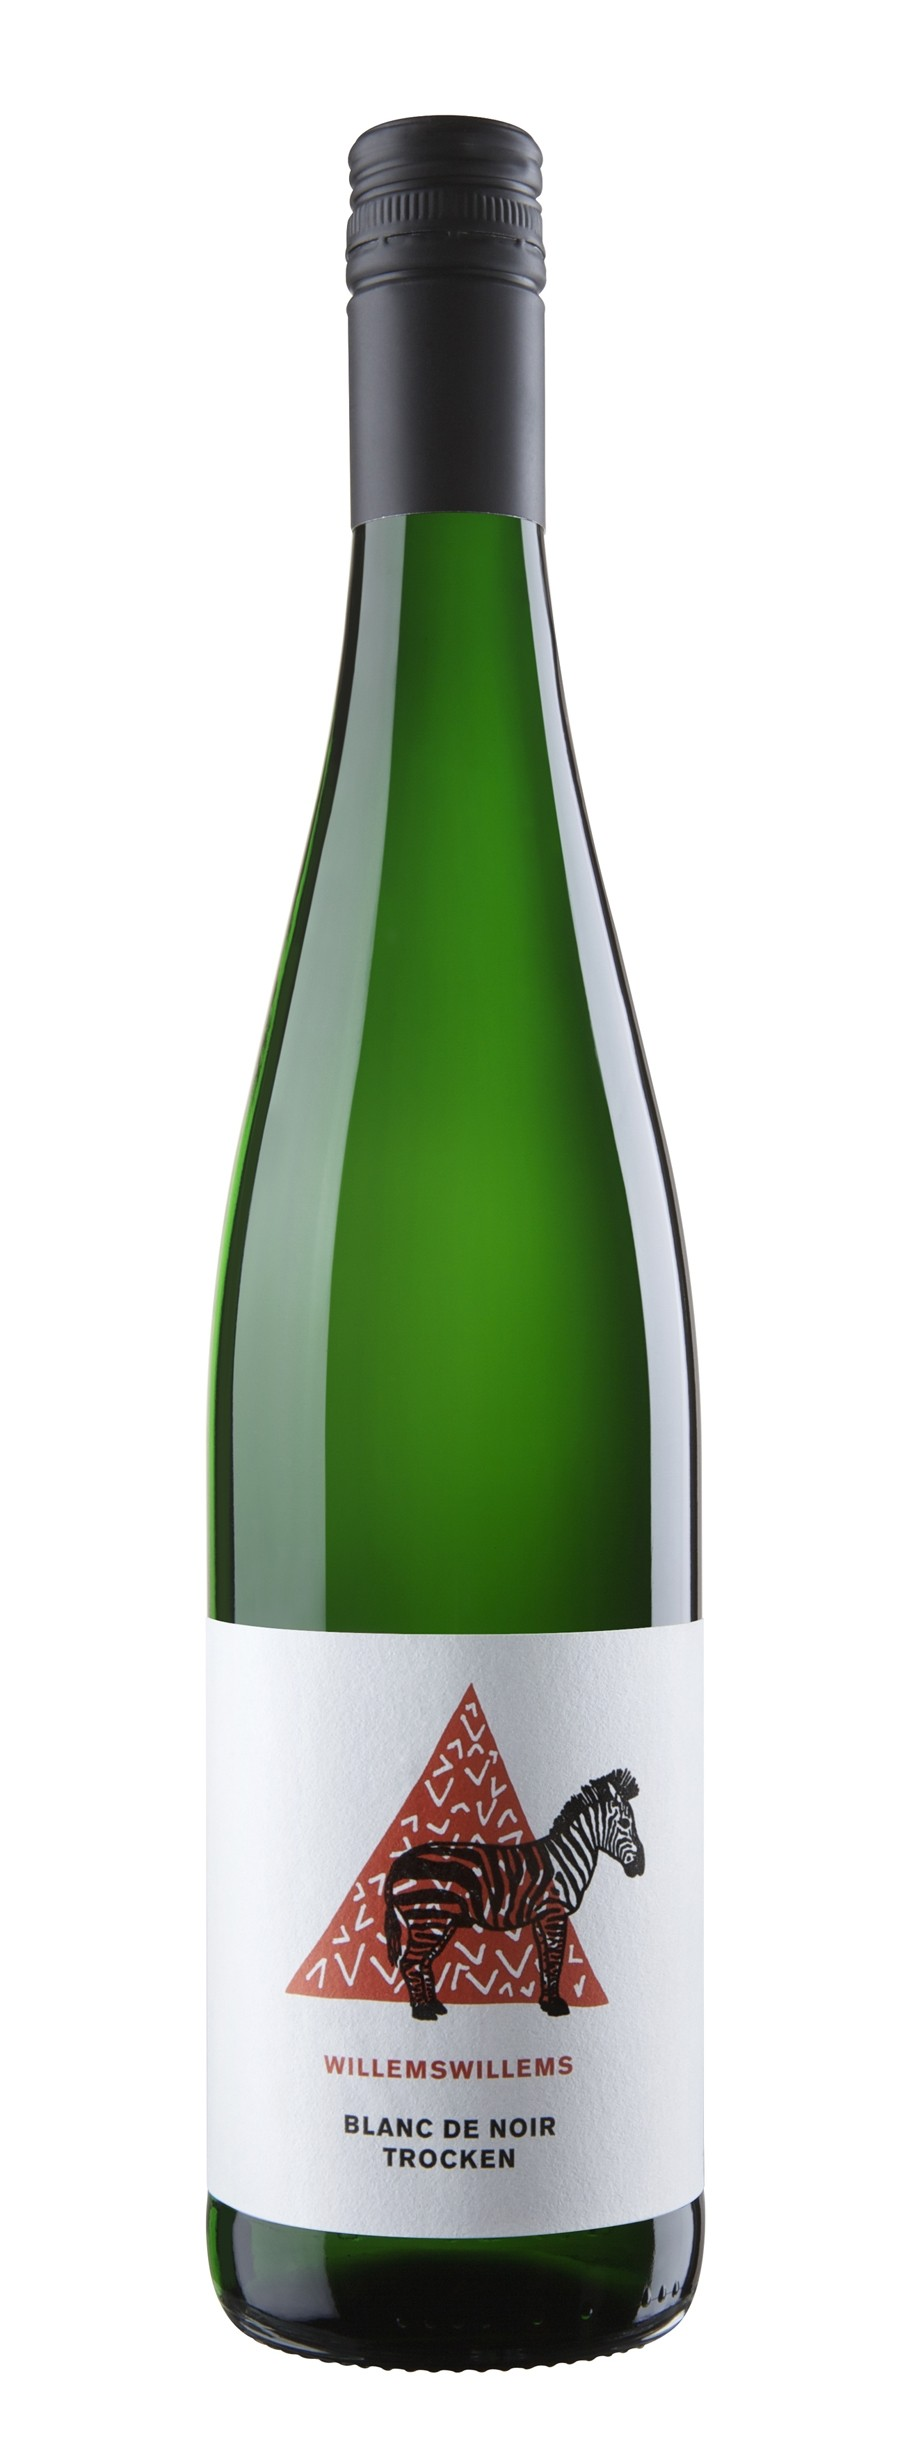 Willems Willems Blanc de Noir